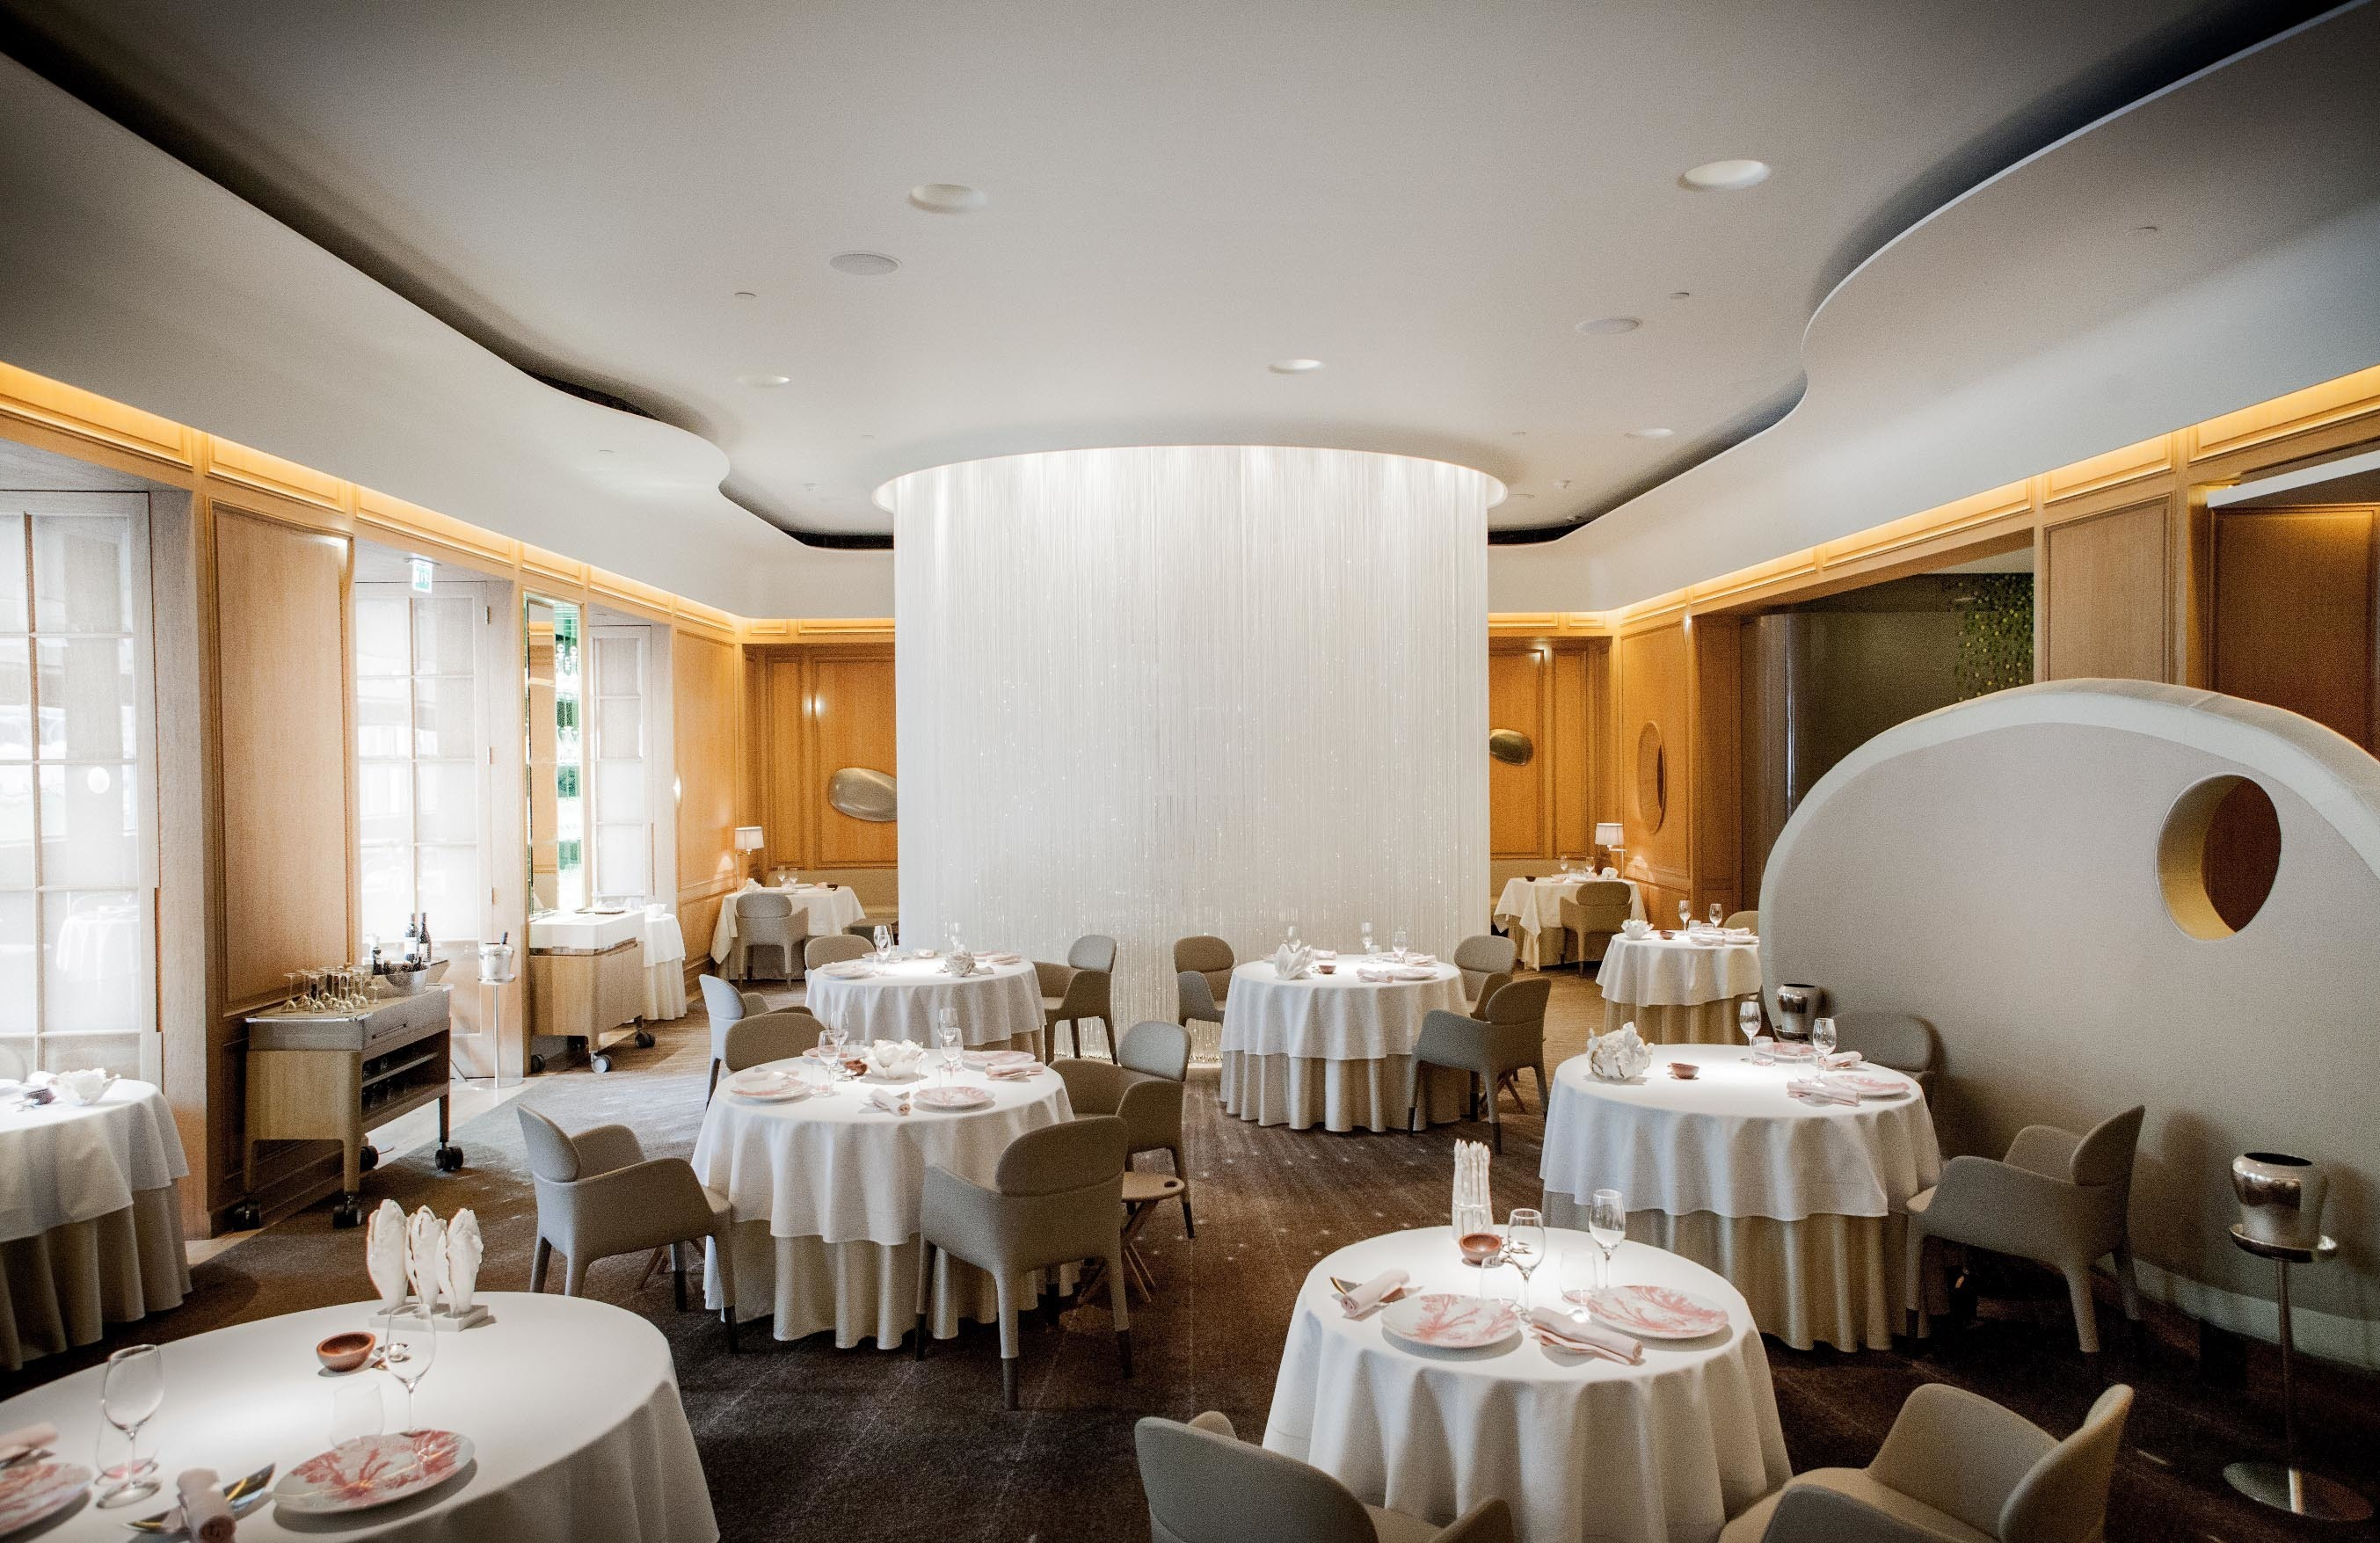 Michelin star restaurants in London - Alain Ducasse at the Dorchester